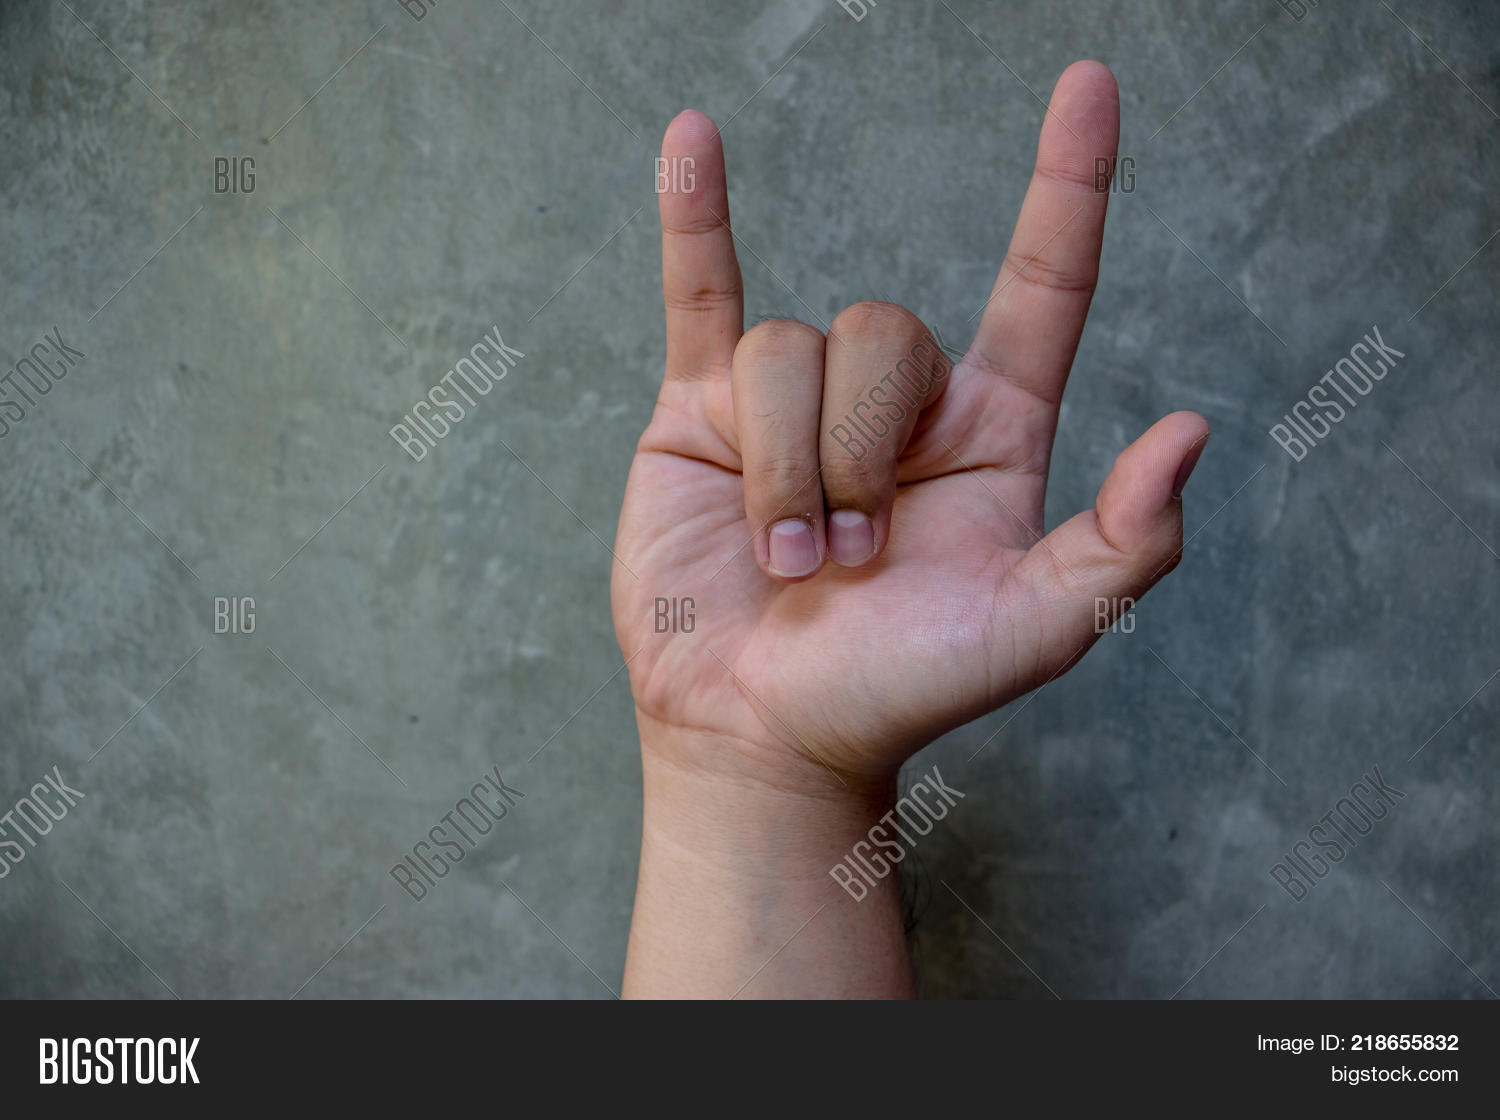 Ily Sign Letters L Y Image Photo Free Trial Bigstock